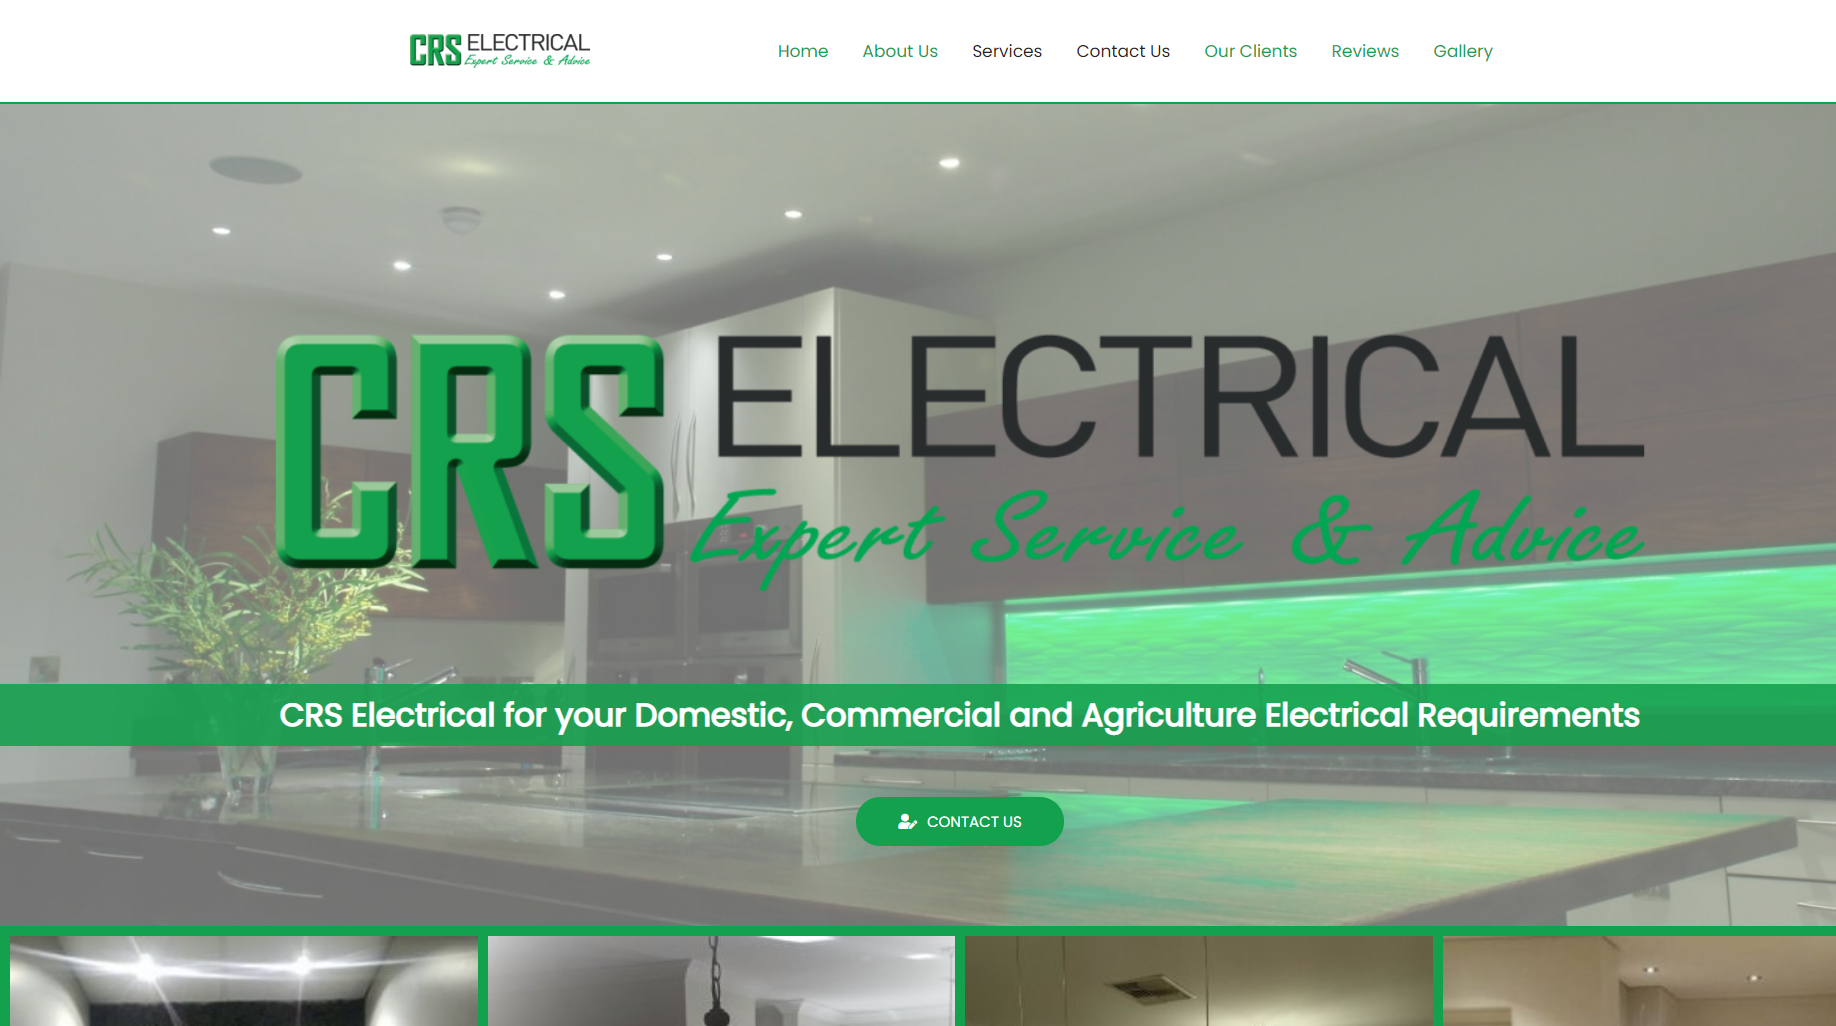 crs electrical post website